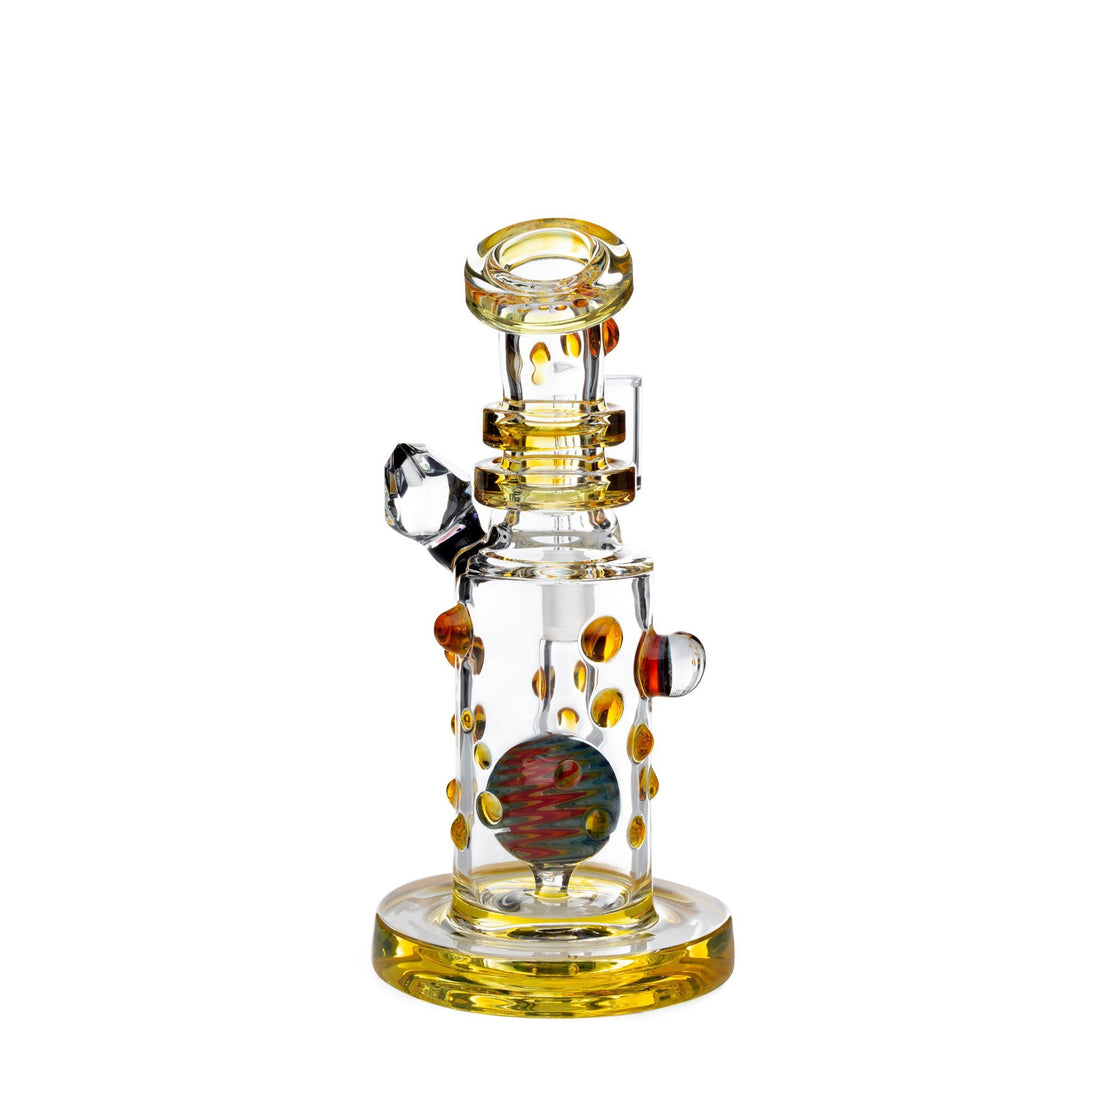 Hubbard Glass Dab Rig w/Wig Wag Perc - Northstar Yellow